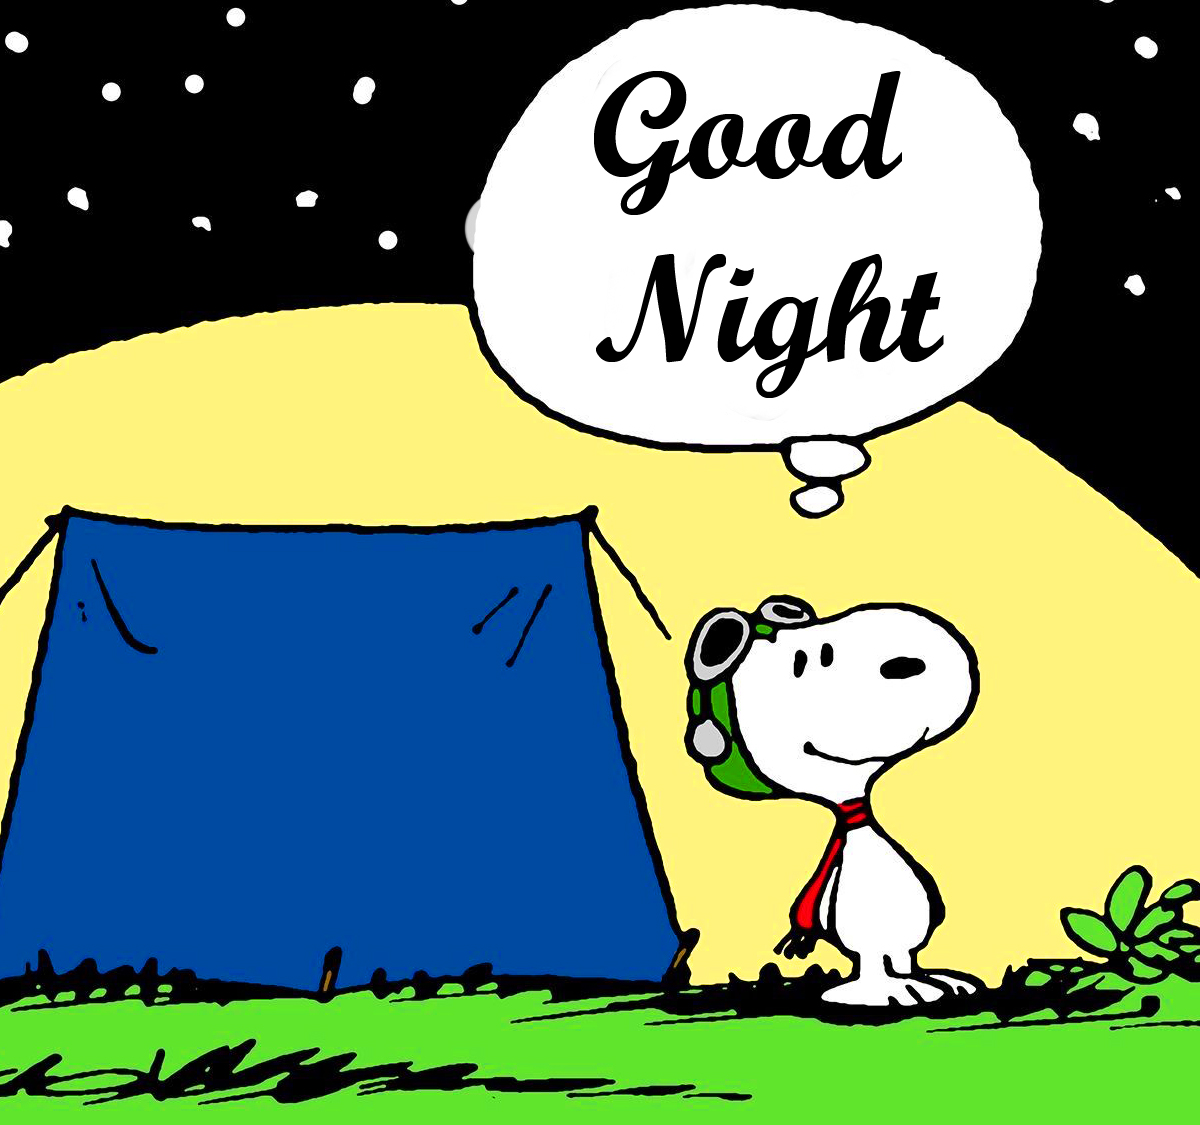 Snoopy with Tent and Good Night Wish